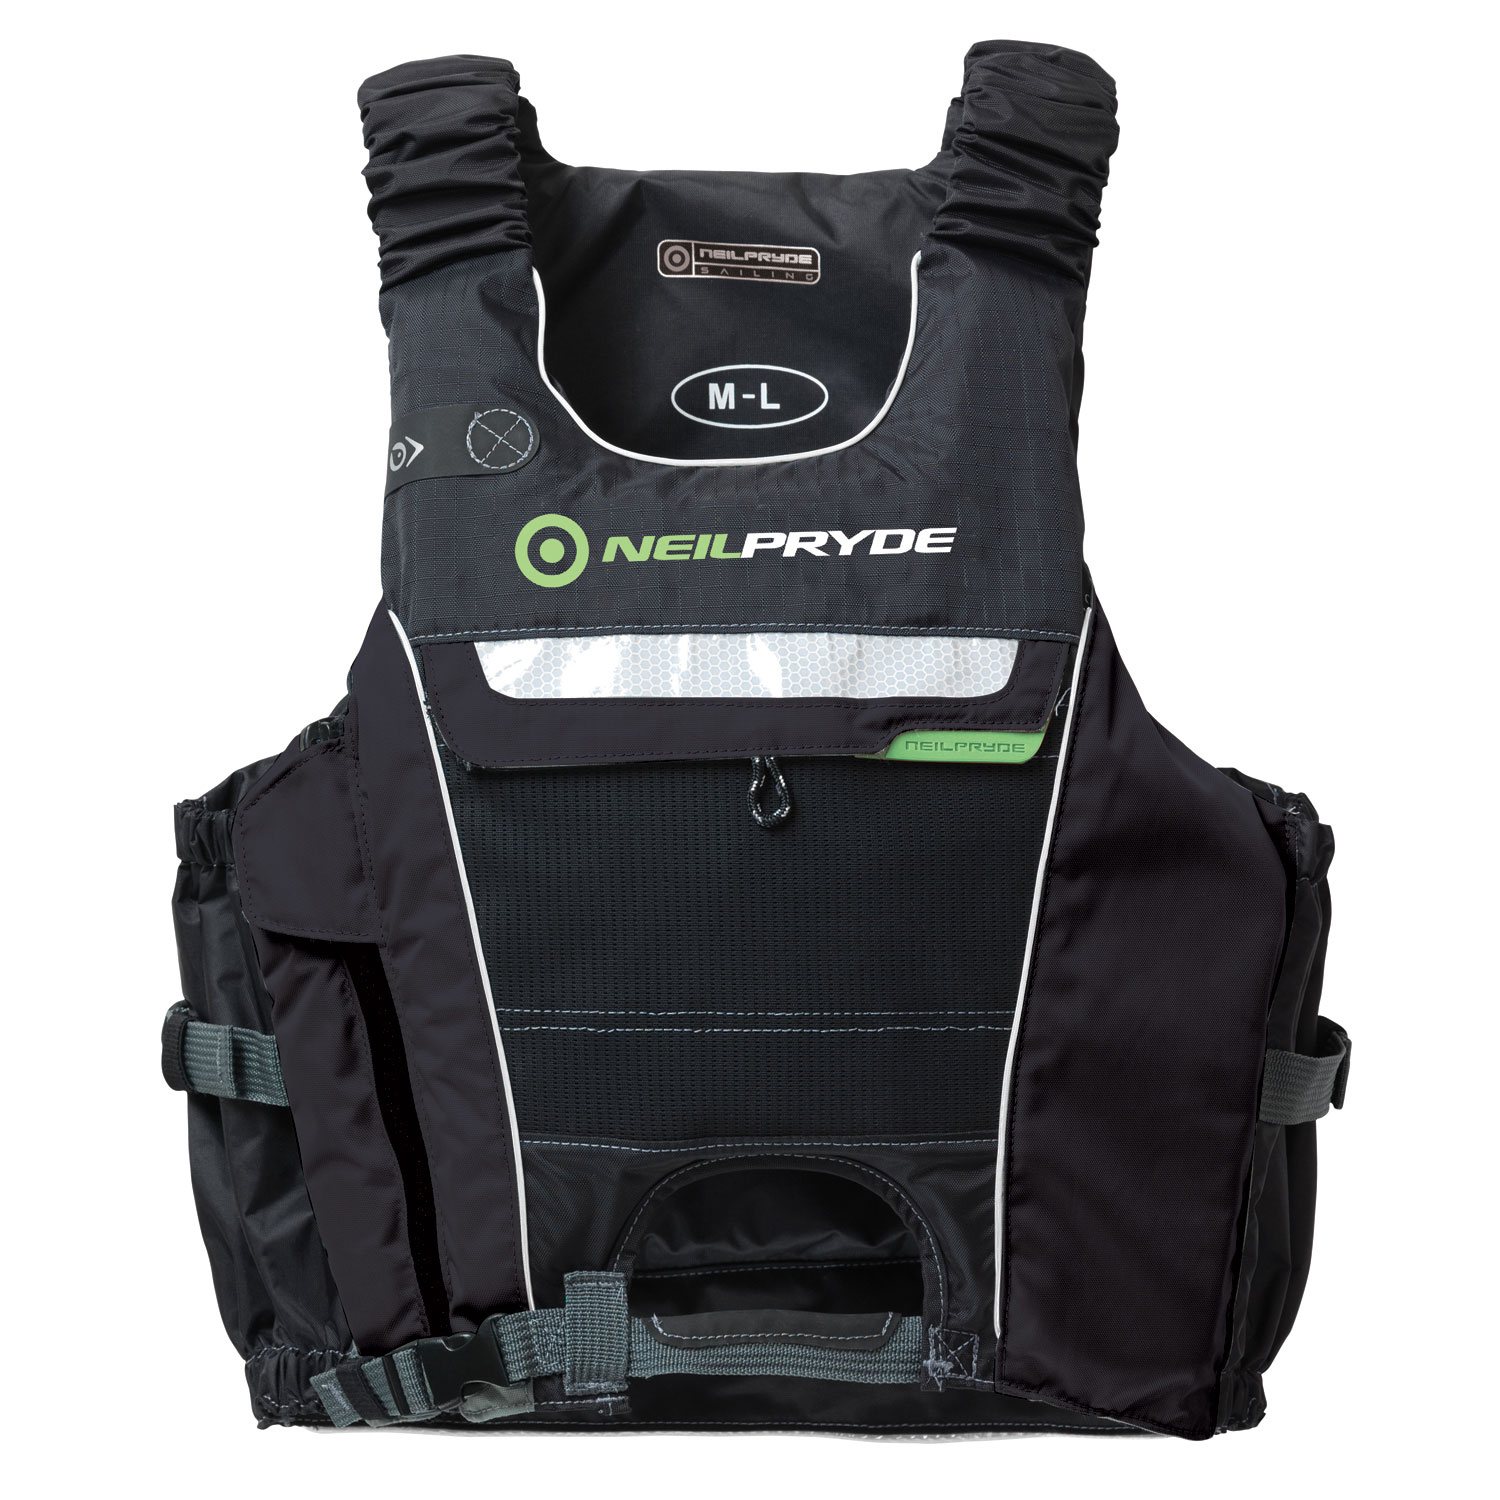 Neil Pryde ELITE Buoyancy Aid / Vest - Black | Coast Water